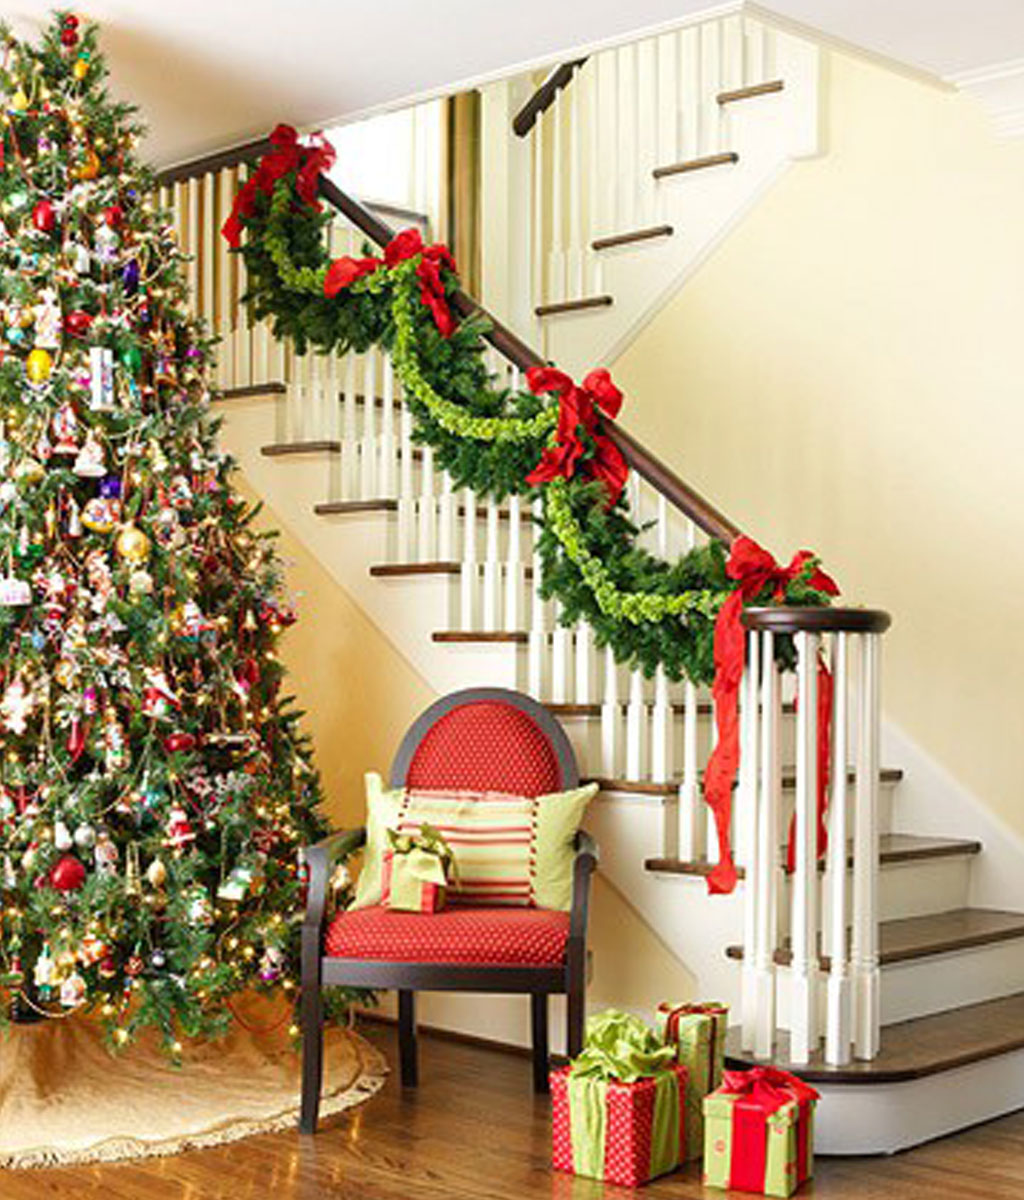 Home Christmas Decorations 9 cheap and festive christmas decor ideas for your home |